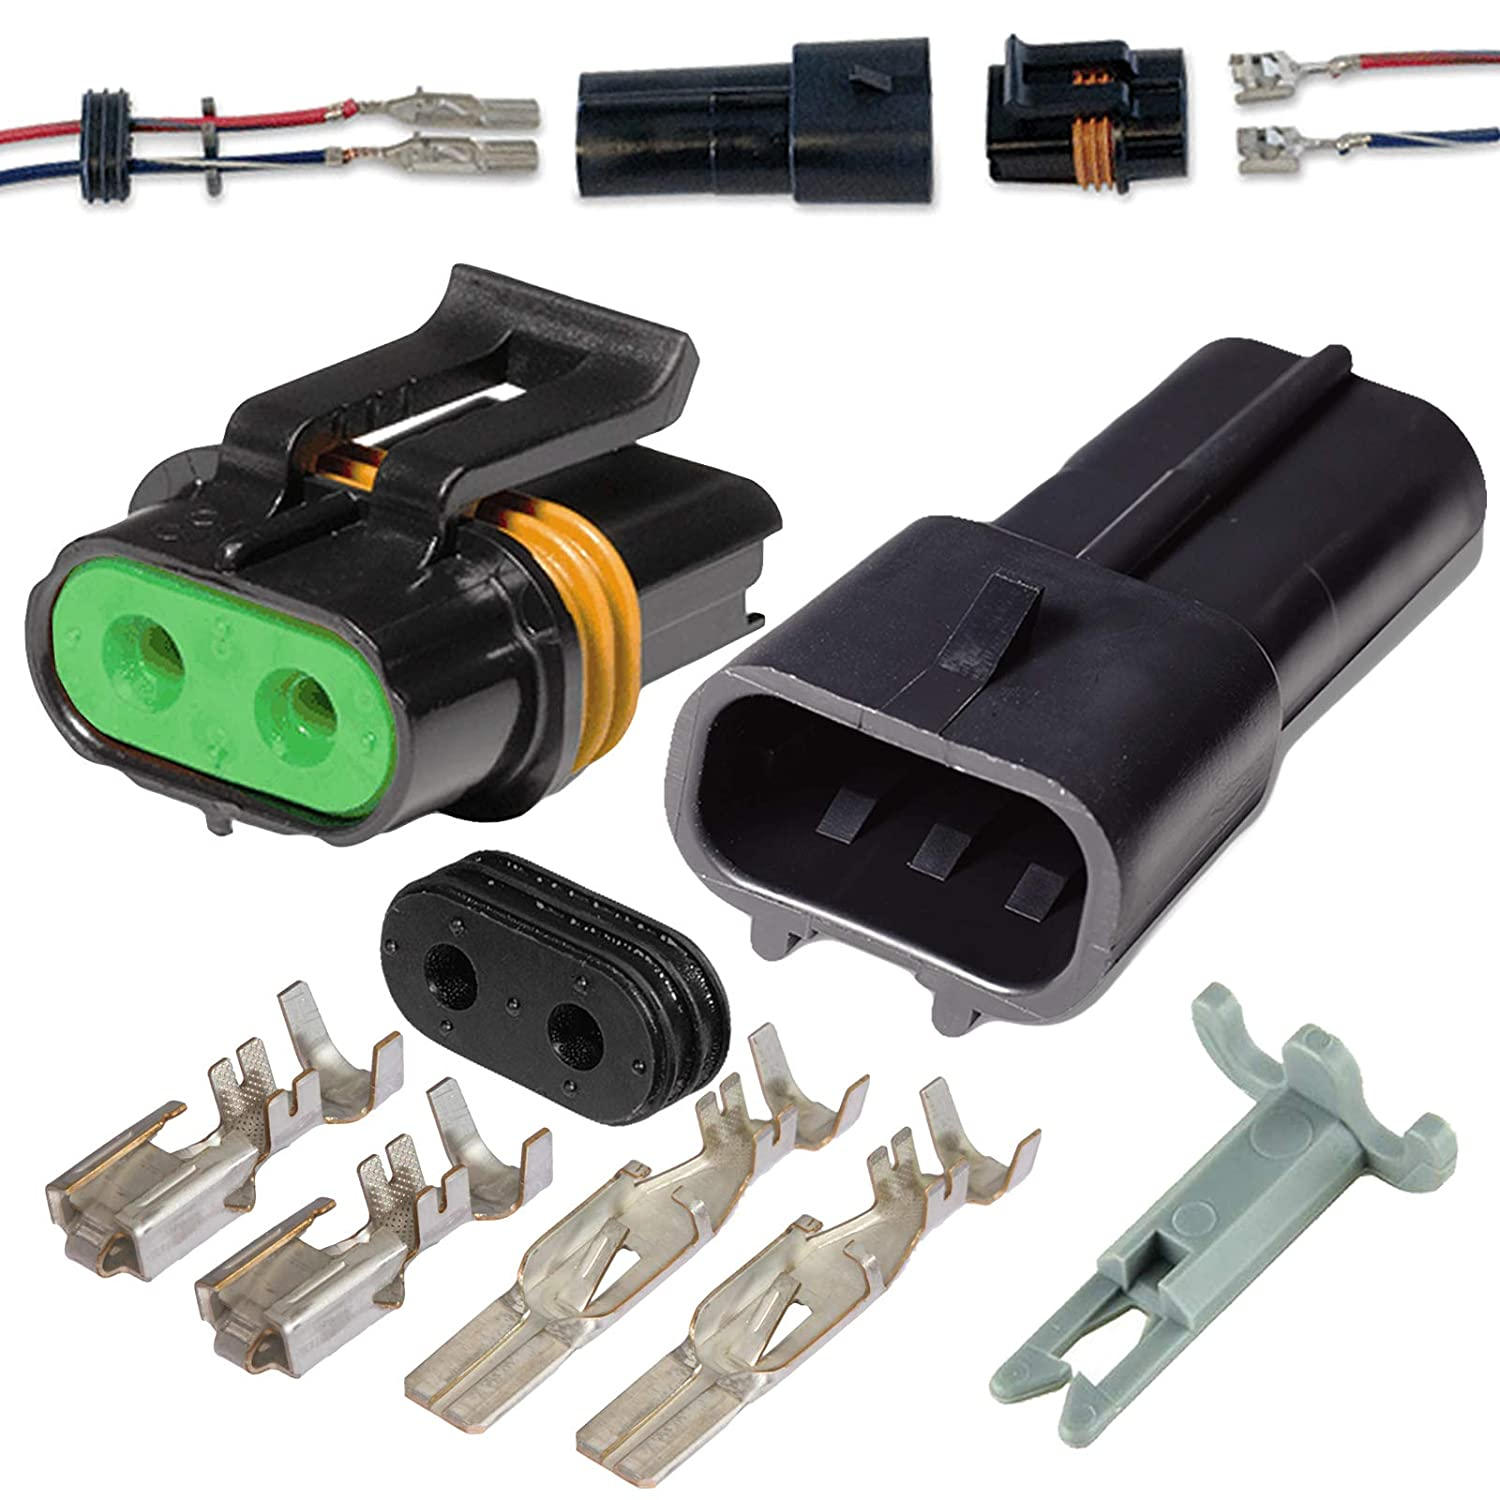 2 Pin Delphi Metri-Pack Waterproof Connector 14-12awg Terminals and Seals 46Amp Aptiv (formerly Delphi)